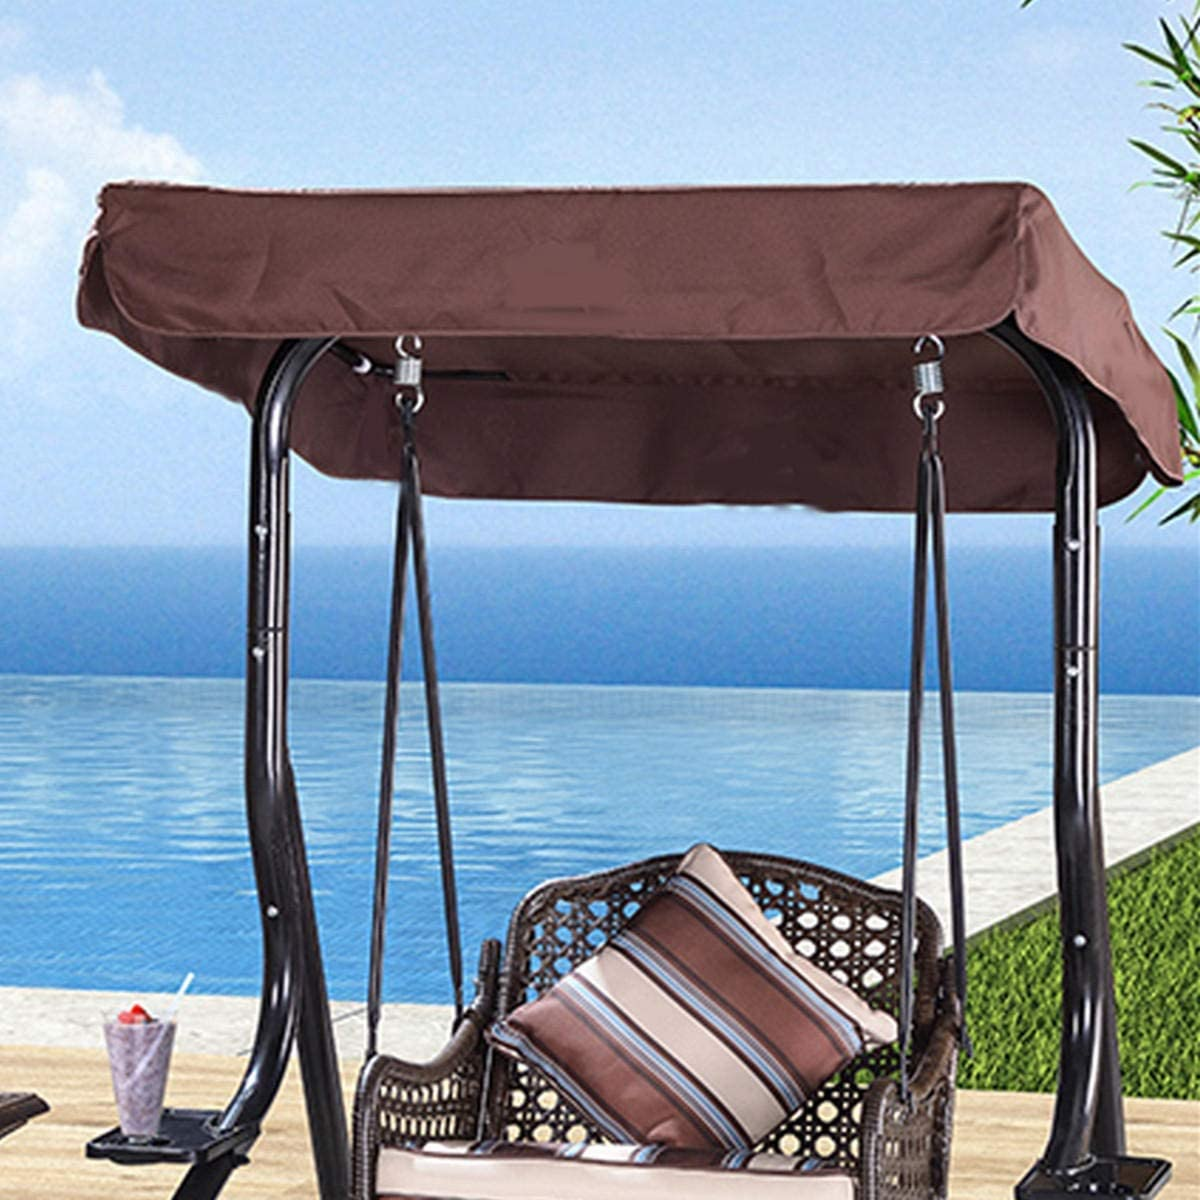 Frame Tents, 3 Seater Outdoor Garden Swing Chair Replacement Canopy Spare Fabric Sun Dust Waterproof Cover Waterproof Color : Coffee